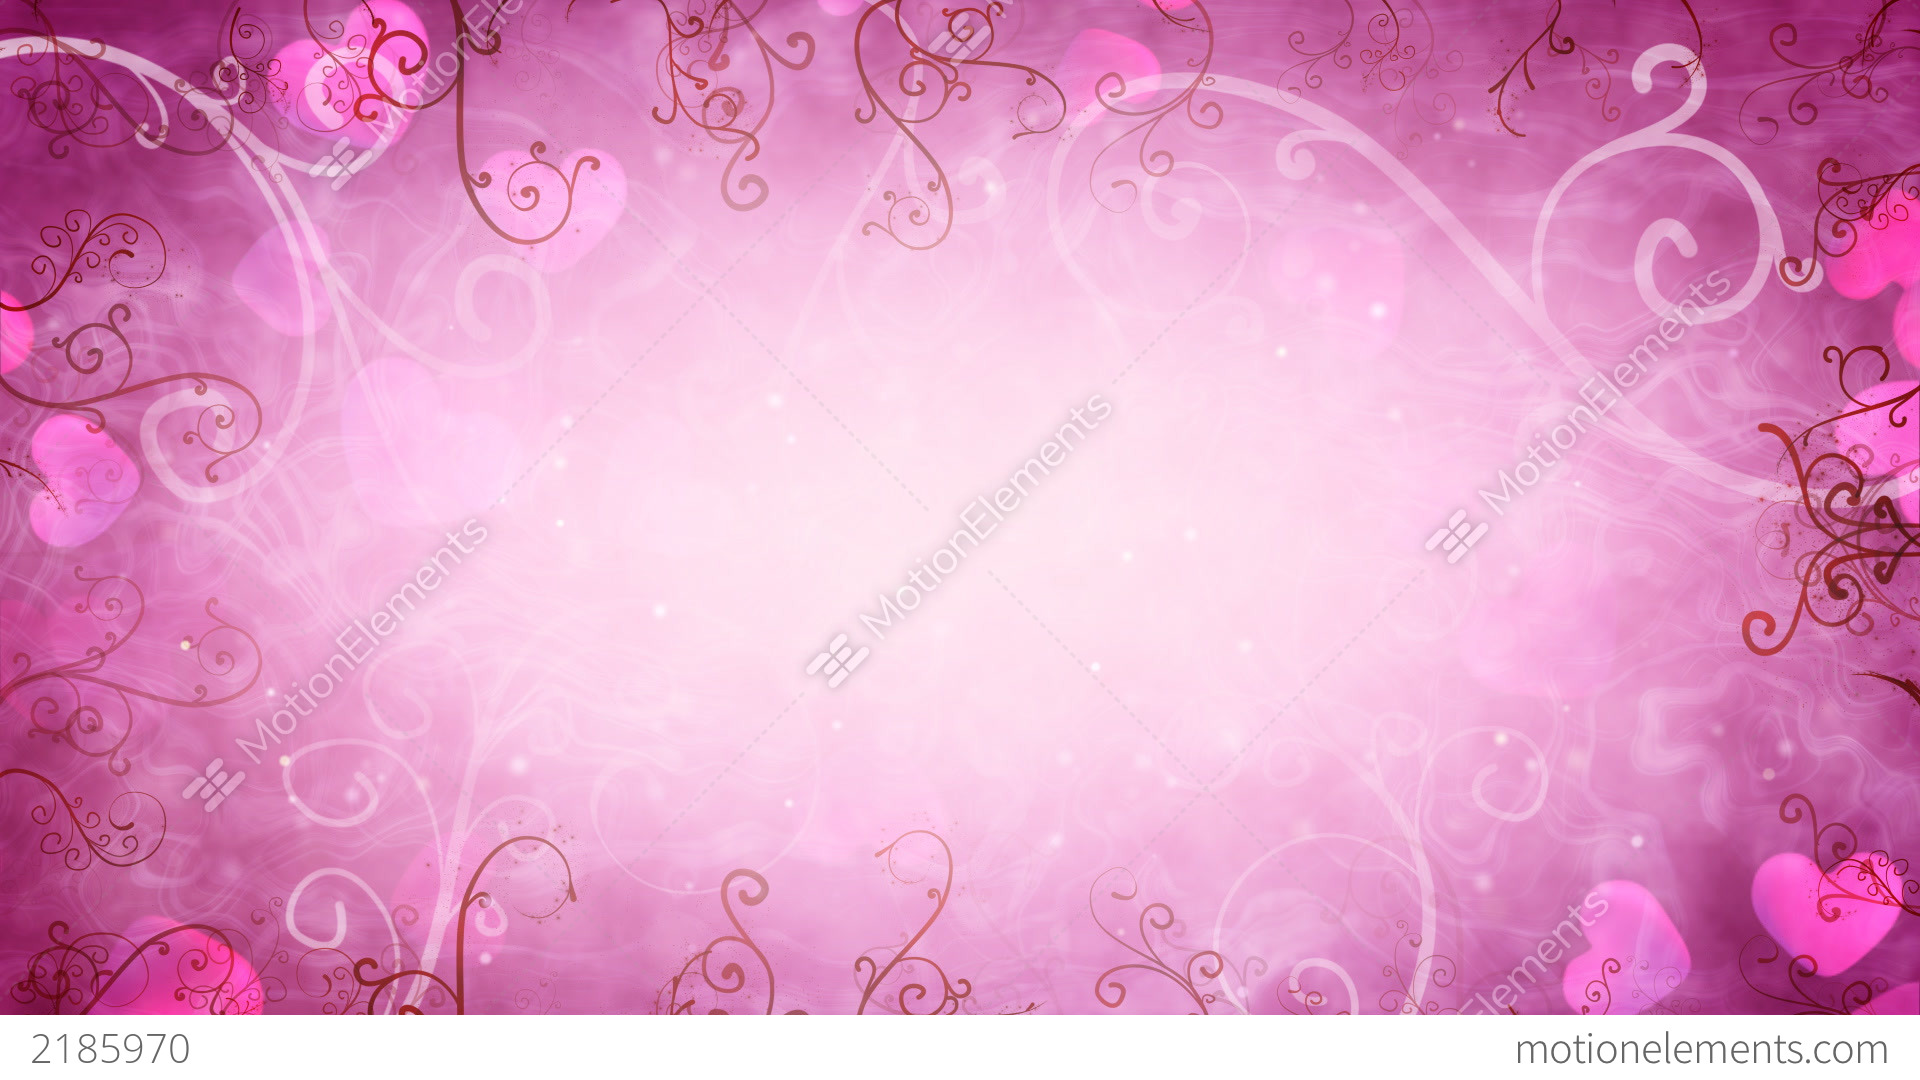 Clip 21467602 Stock Footage Snow Alpha   Mov Snowflakes On The Face For New Tears Eve And Christmas in addition Clip 3126475 Stock Footage Sparkle Effect Seamless Loop Alpha as well Dethleffs Caravanverzekering in addition 3719267 4 as well 18414632. on hd video loop